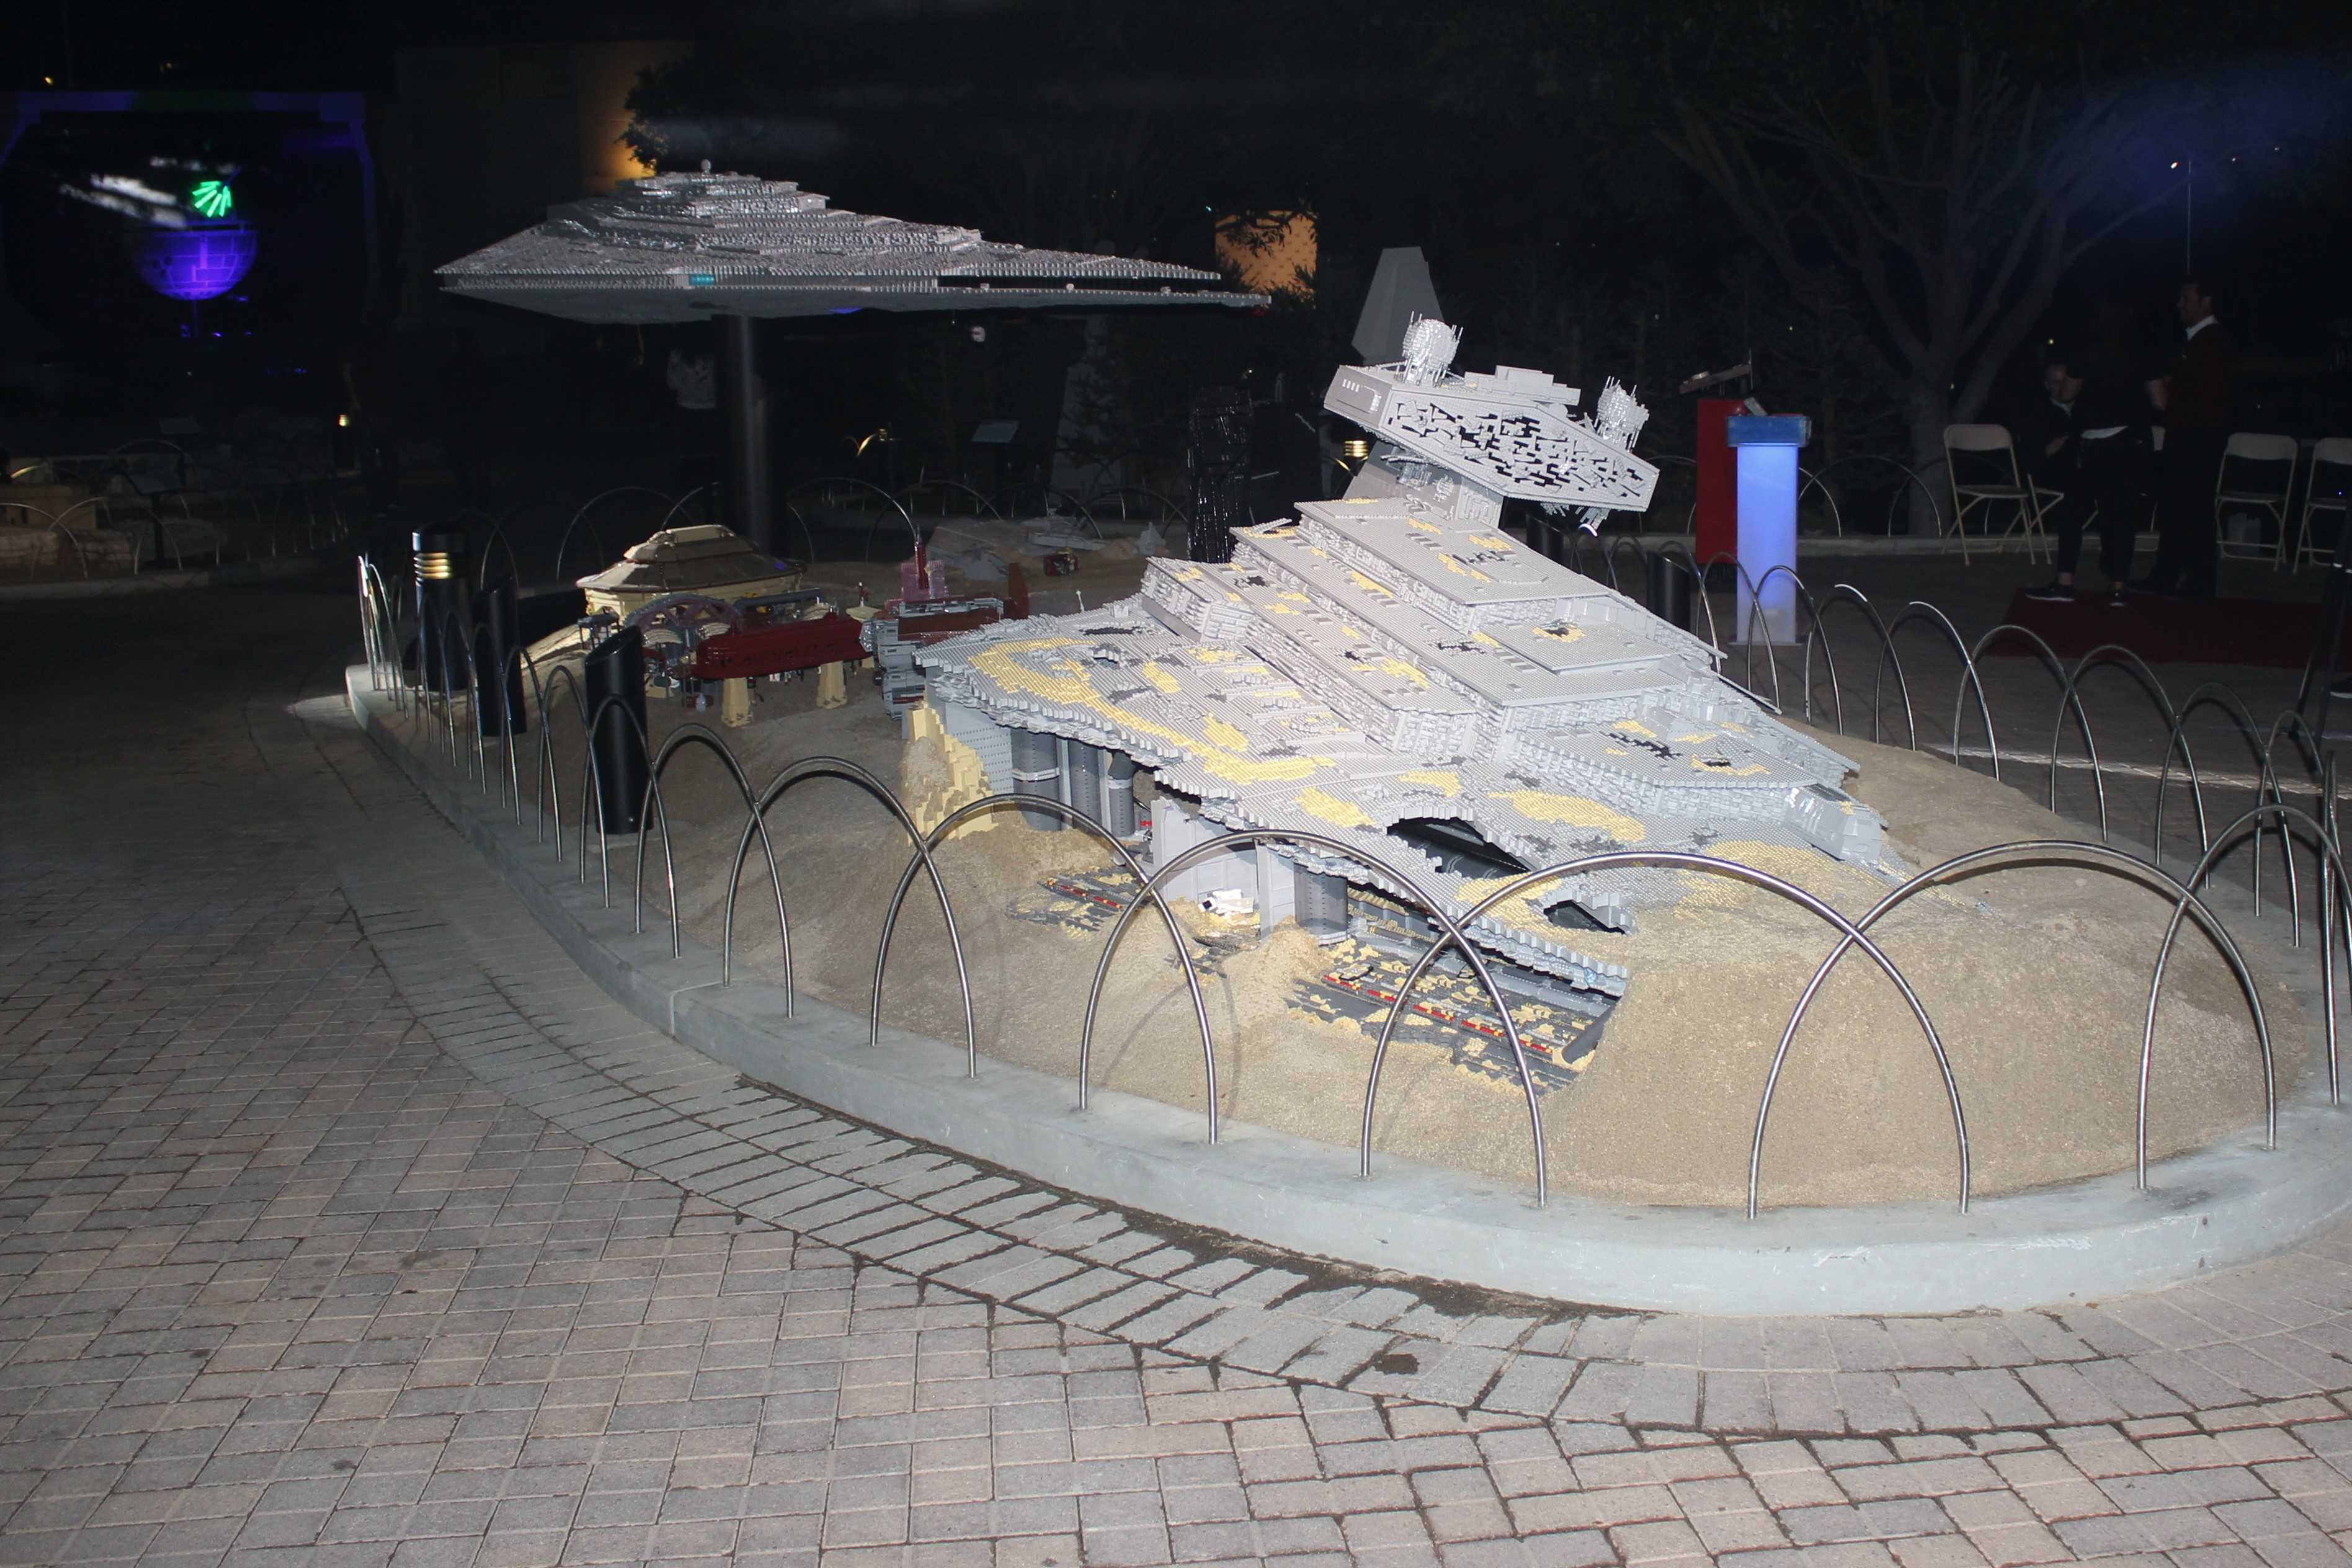 The Latest From Legoland The Lego Star Wars The Force Awakens